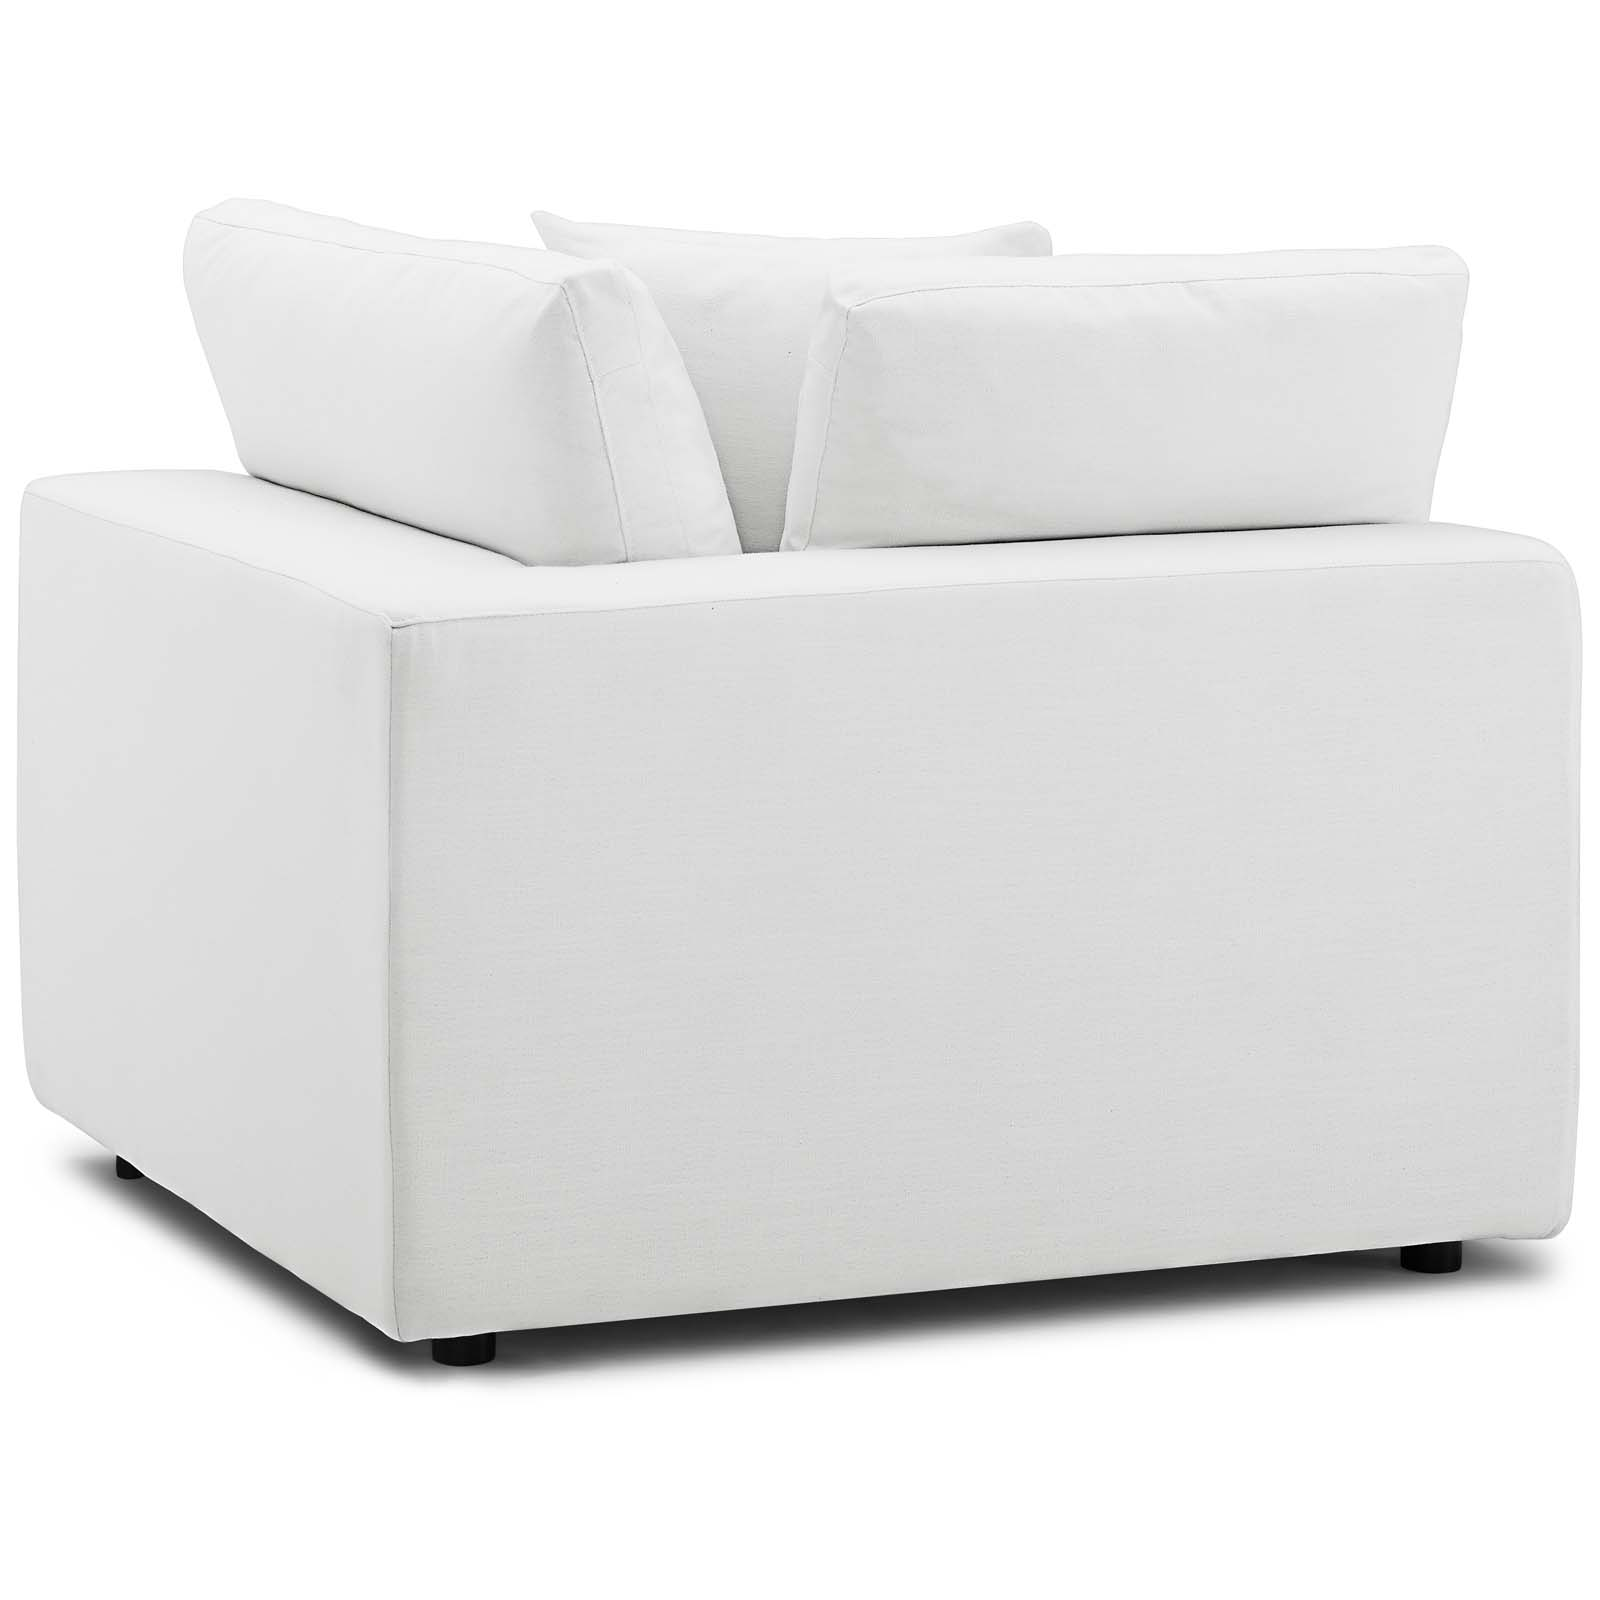 Commix Down Filled Overstuffed 6 Piece Sectional Sofa Set White